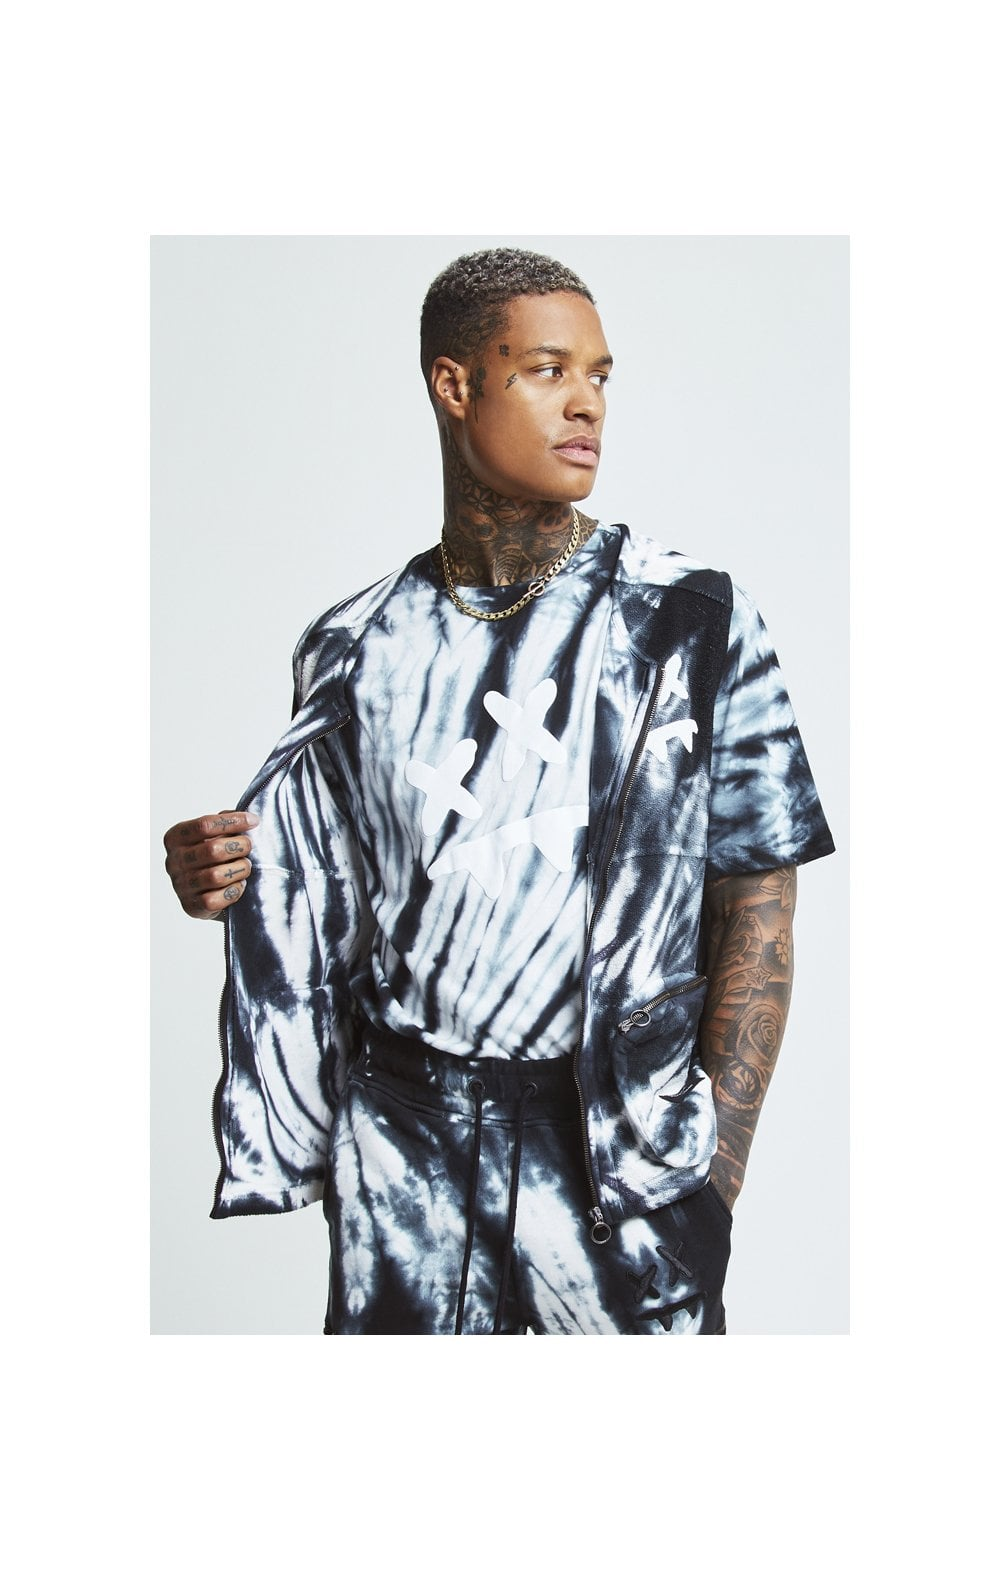 Load image into Gallery viewer, SikSilk X Steve Aoki Utility Vest - Black & White Ink Tie Dye